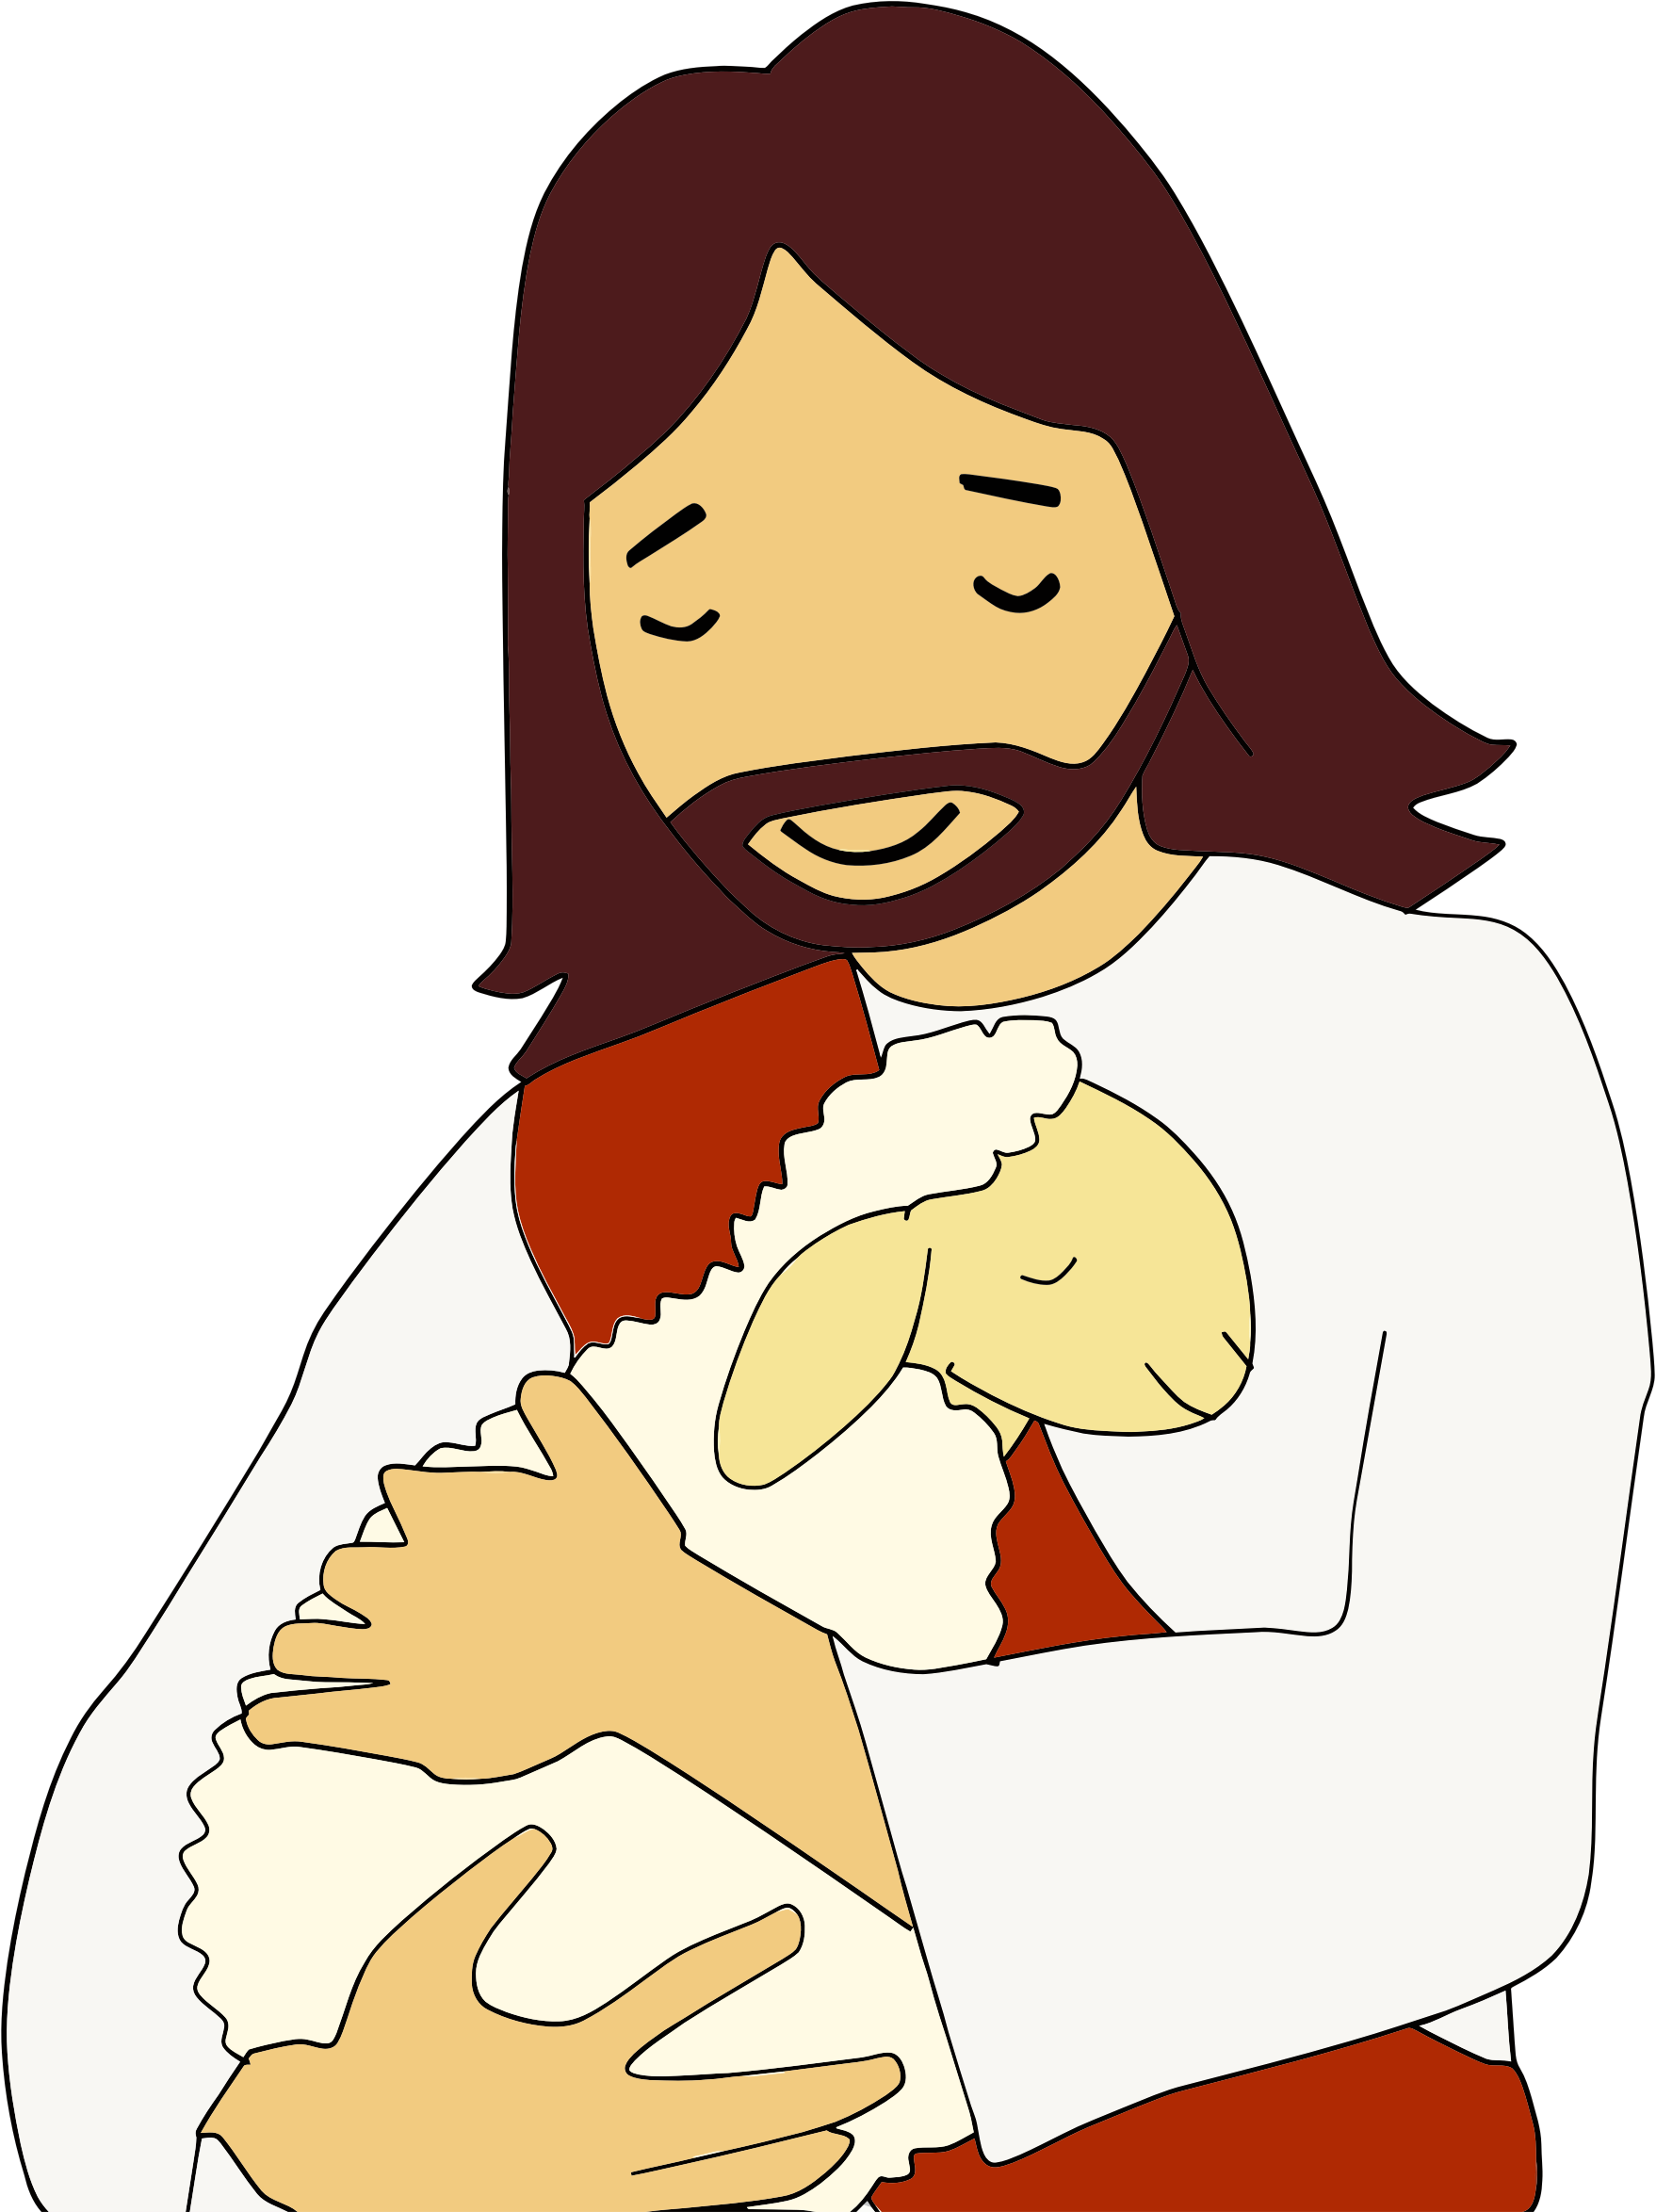 Lamb and cross clipart banner royalty free stock Clipart - Jesus Christ And Lamb banner royalty free stock